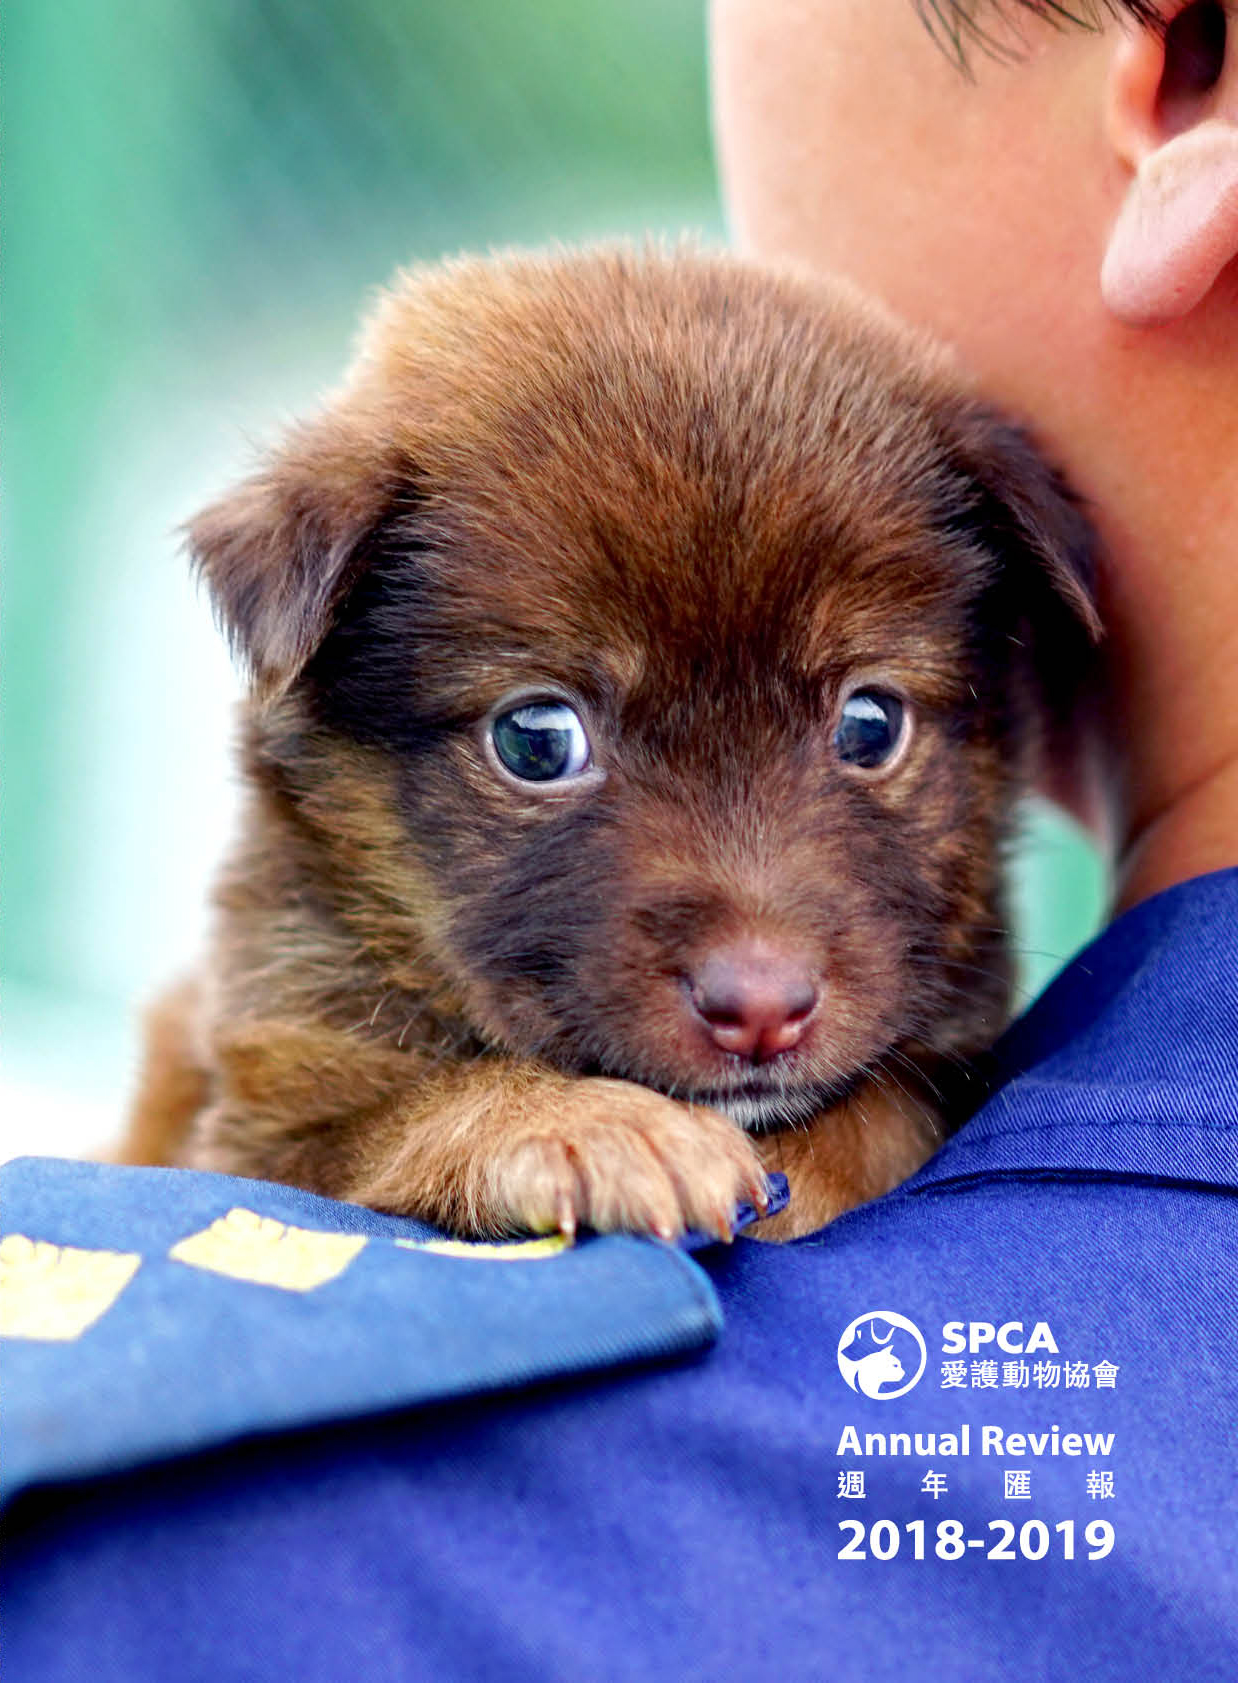 Spca Hong Kong Annual Review